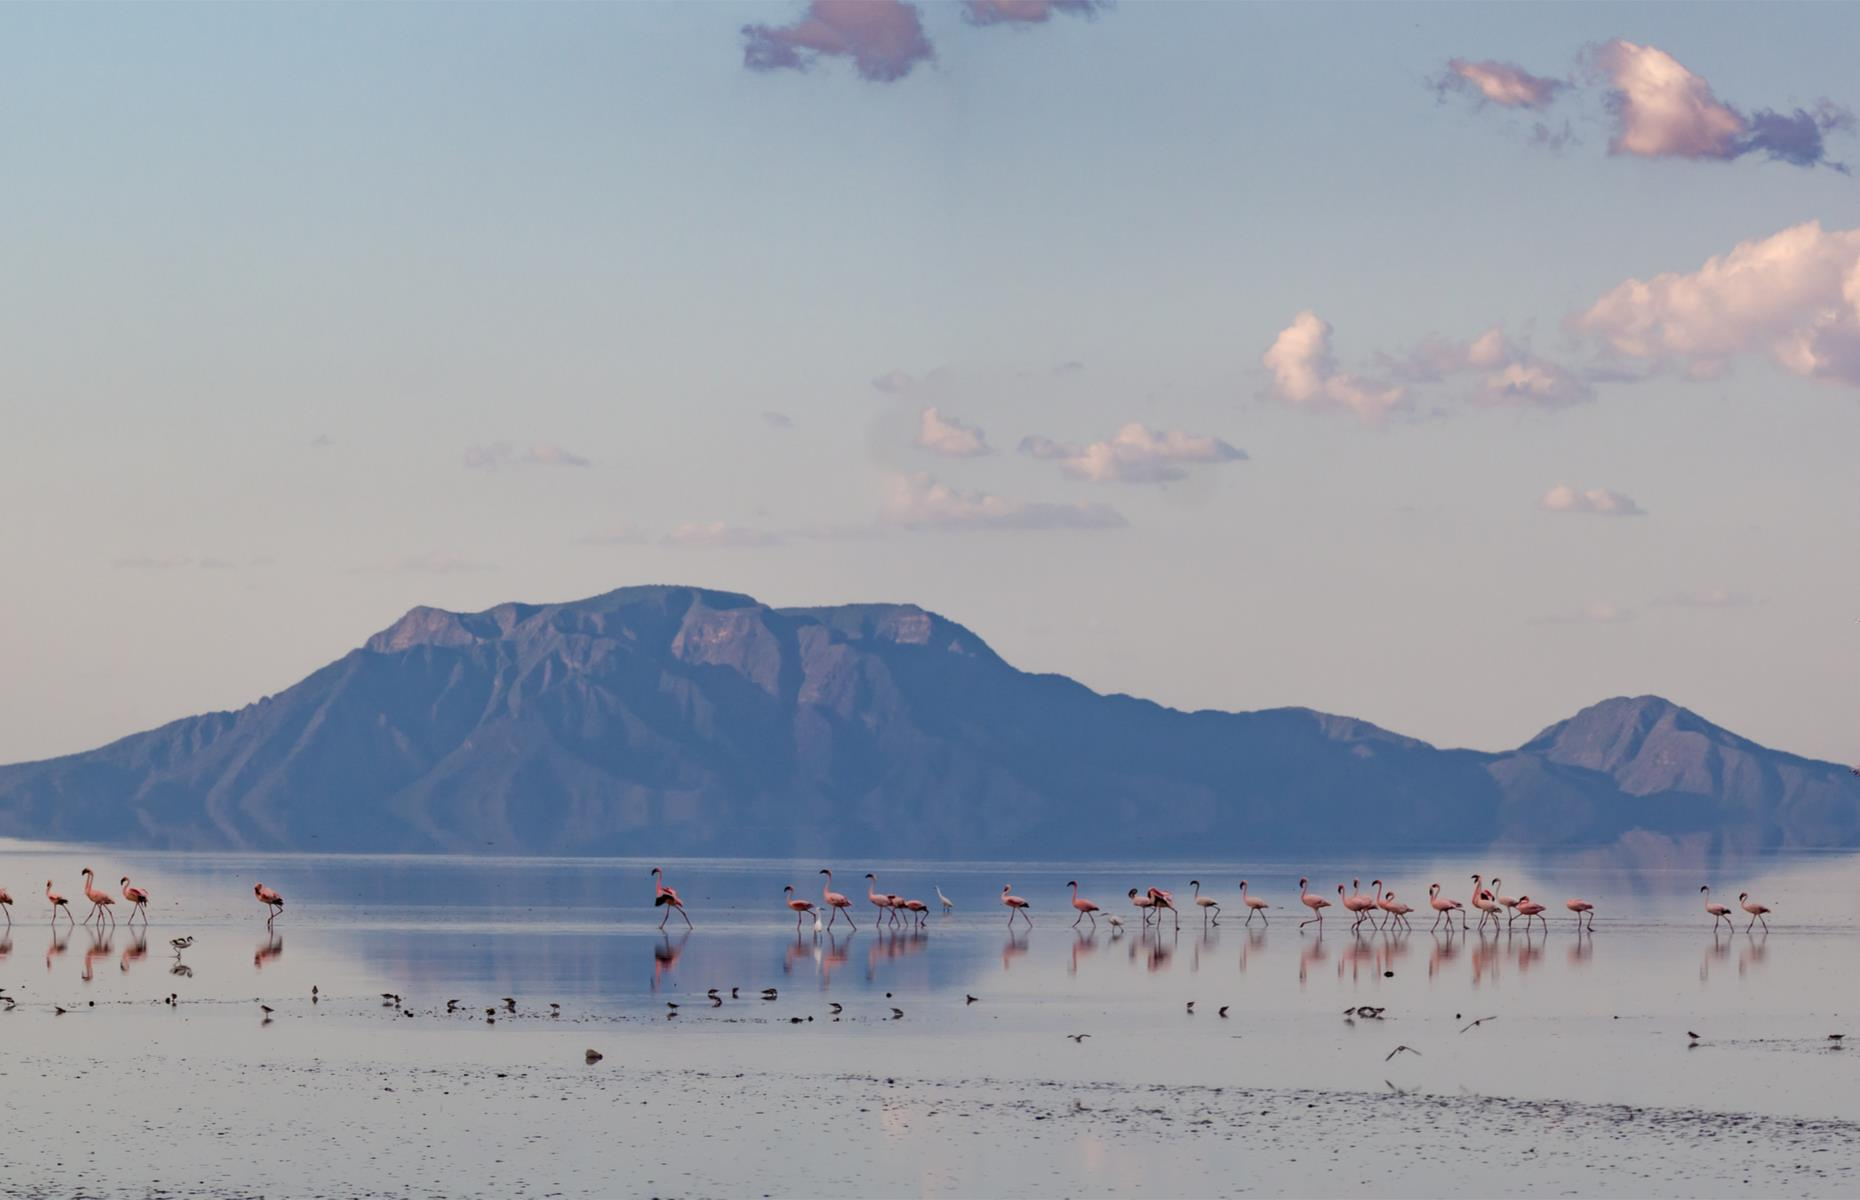 Slide 28 of 51: Flamingos and the nearby Ol Doinyo Lengai mountain make this lake in Tanzania's Gregory Rift look like an idyllic spot. However, Lake Natron is a very dangerous place for a swim.